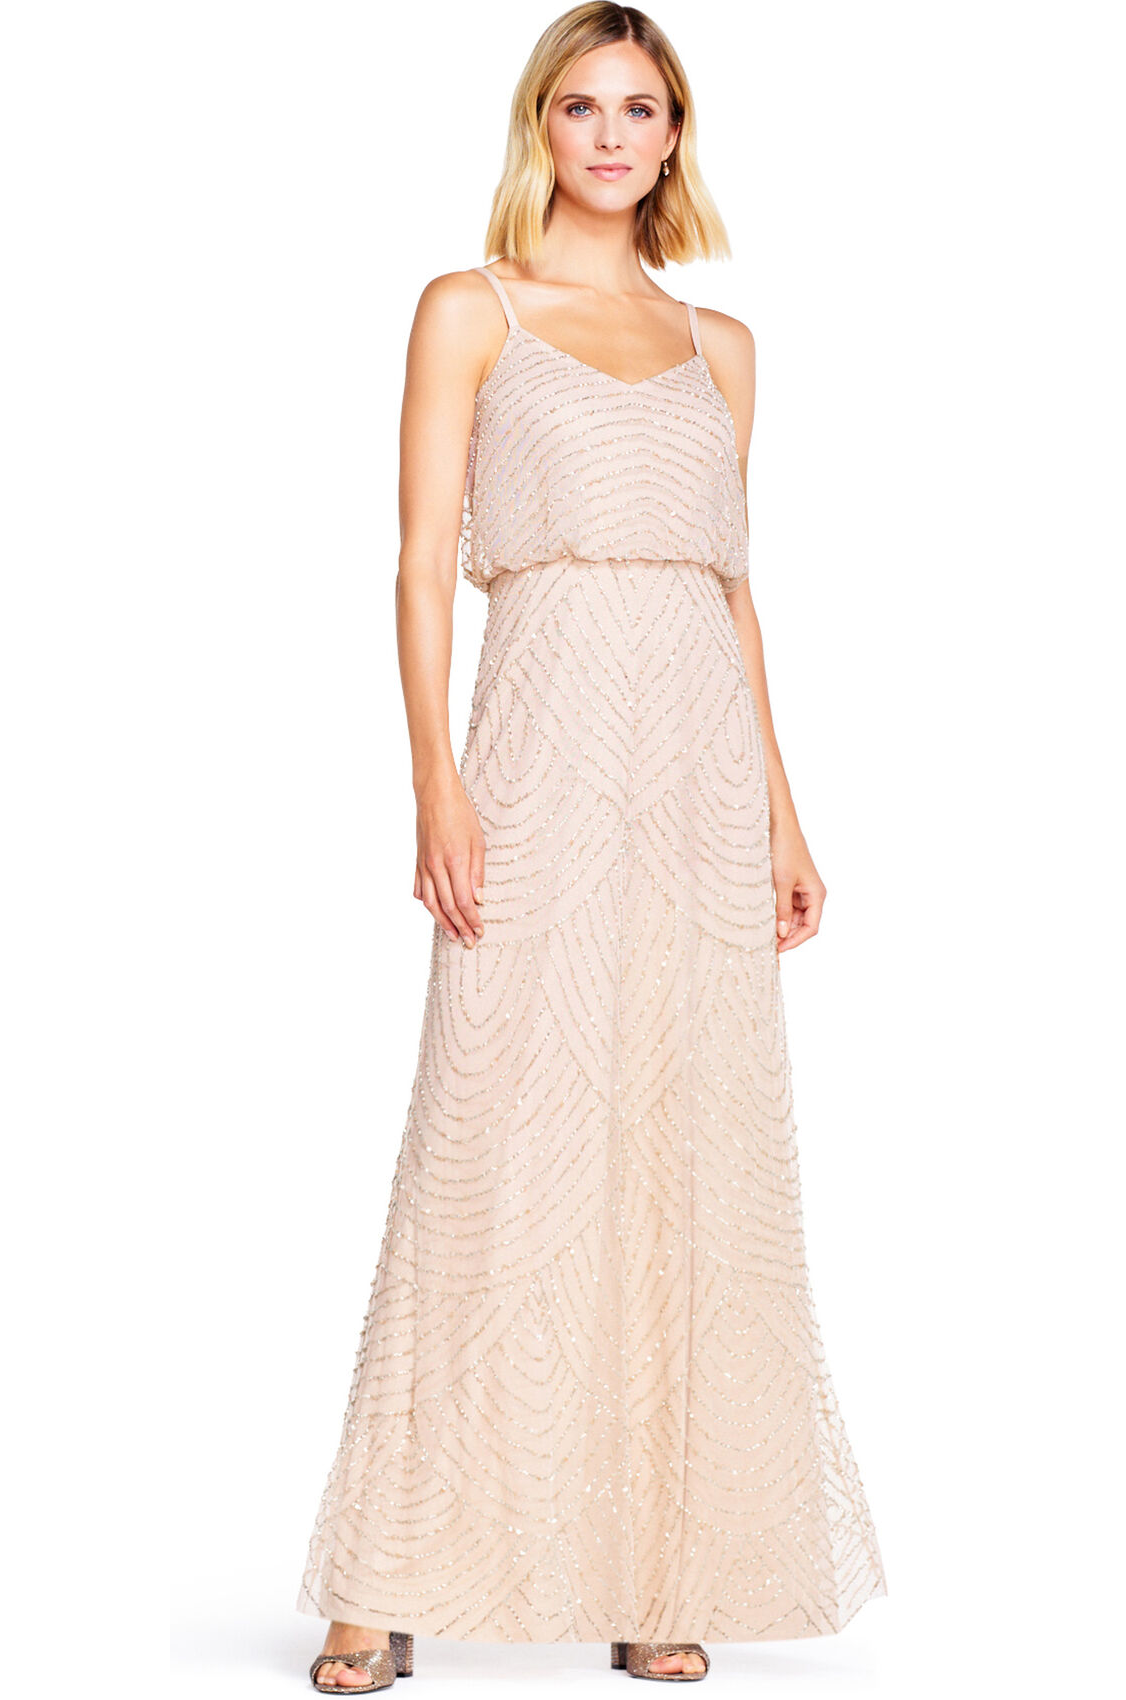 Gatsby Art Deco Blouson Beaded Gown By Adrianna Papell - Blush